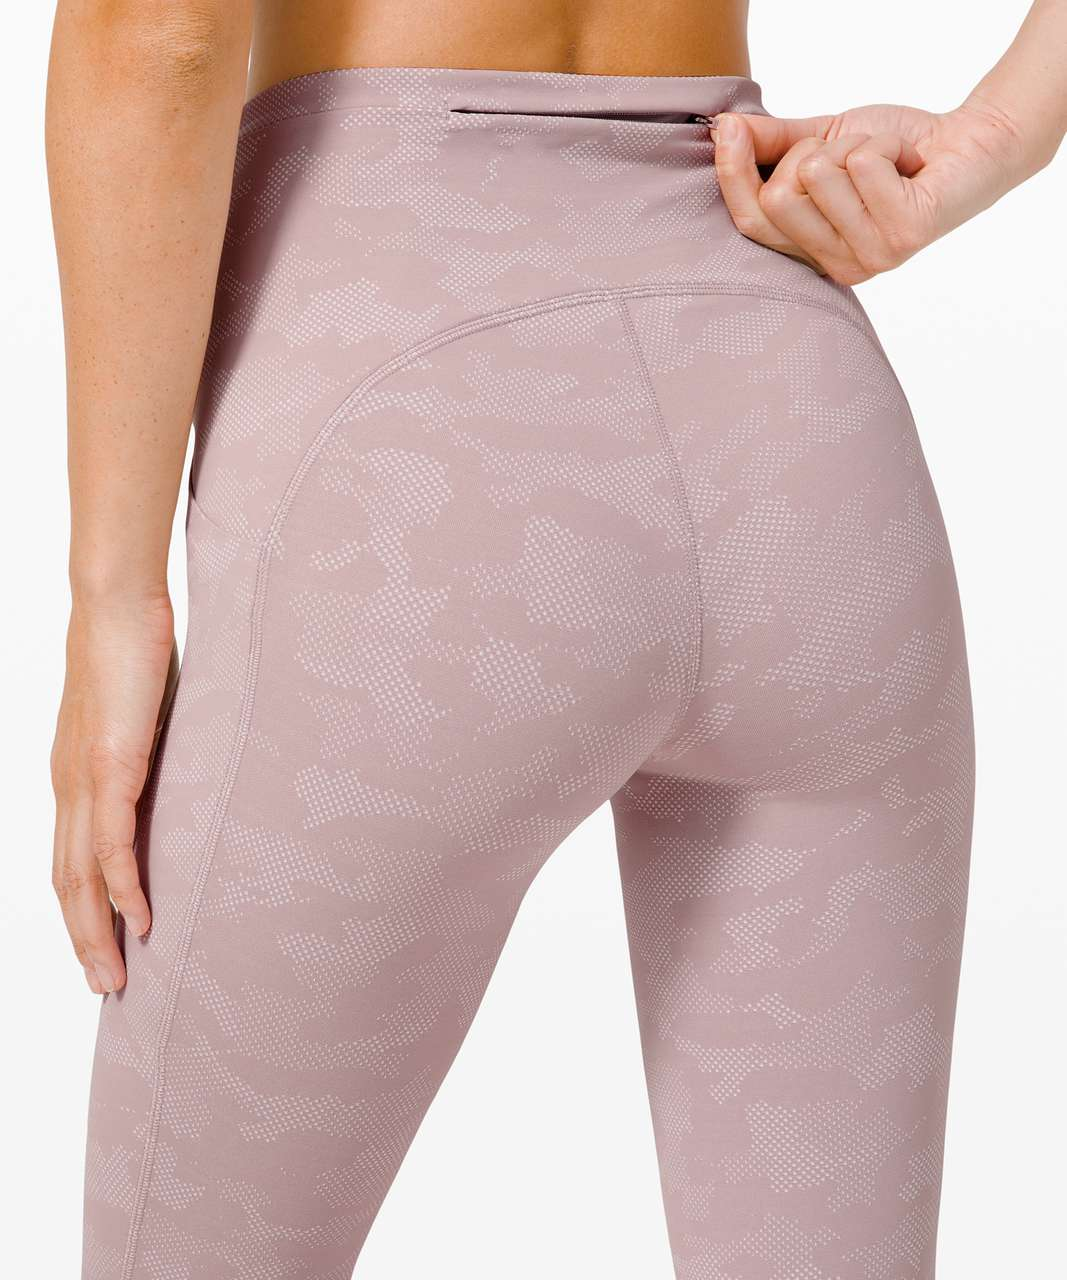 "Lululemon Swift Speed High-Rise Tight 28"" - Heritage Camo Jacquard Silky White"